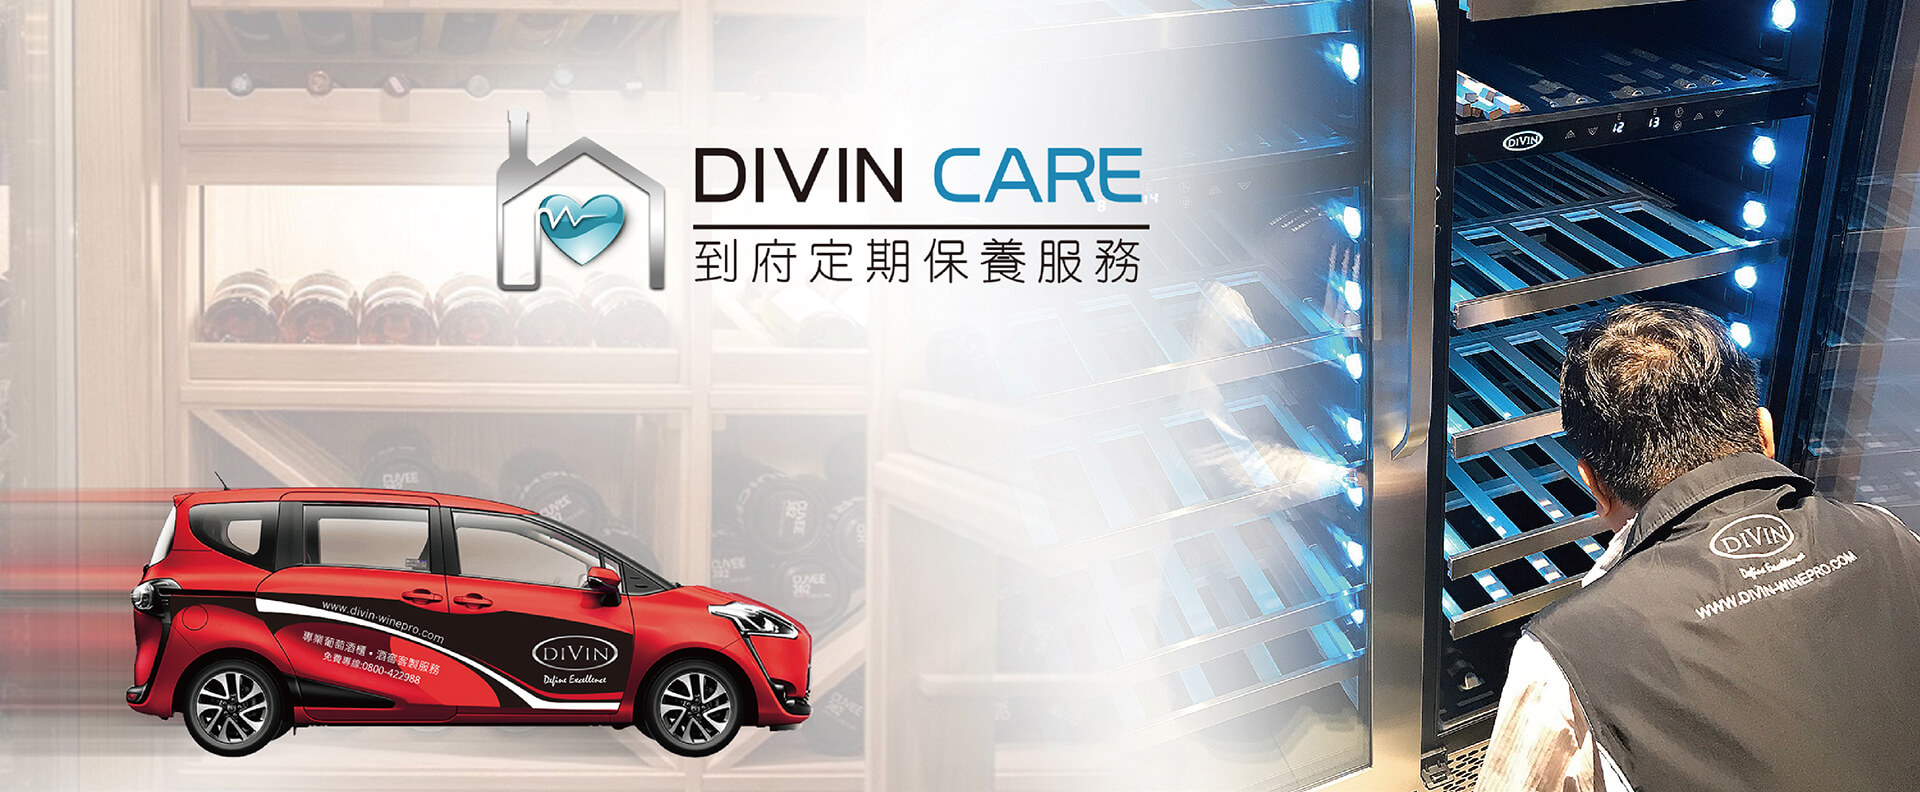 DIVIN Care Banner